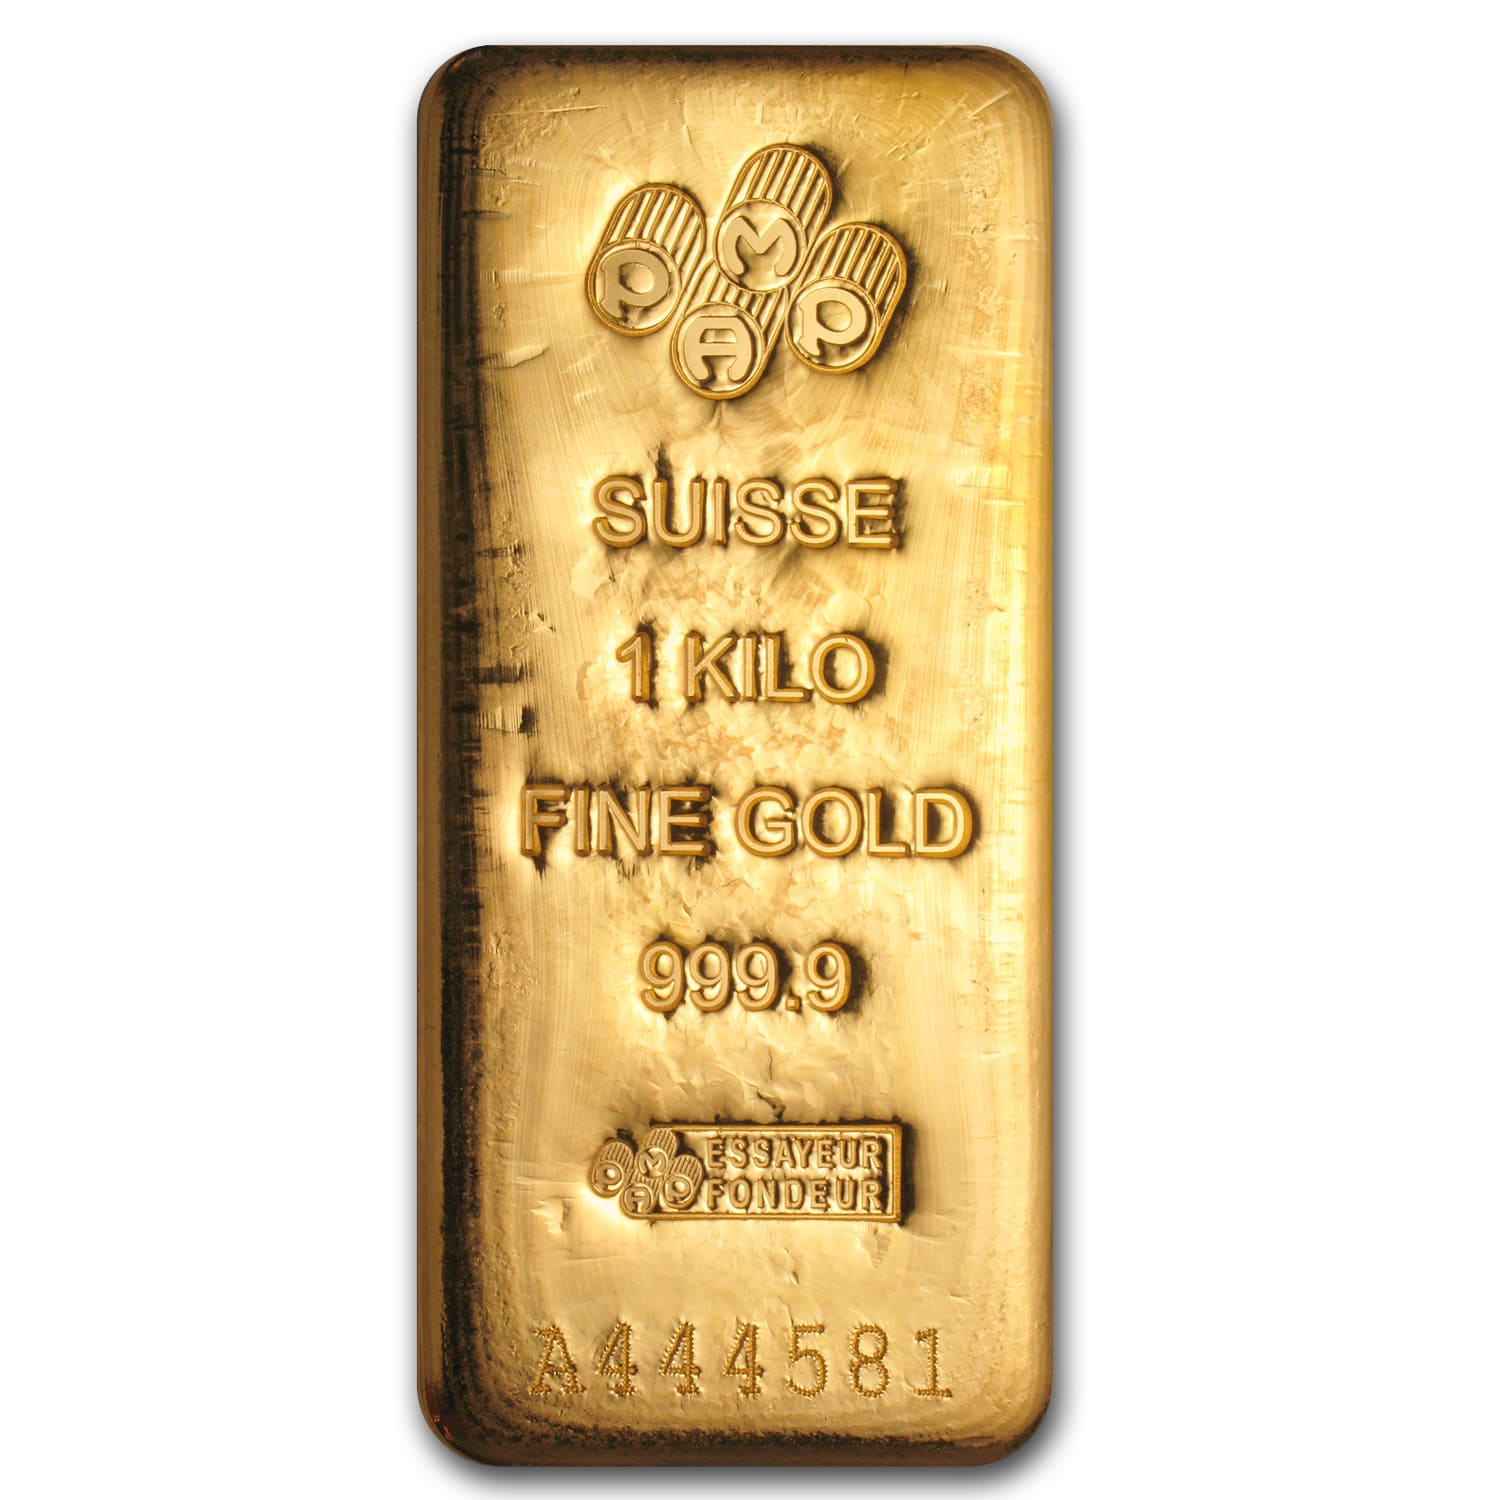 1 kilo Gold Bar - Pamp Suisse (Aug 5th)